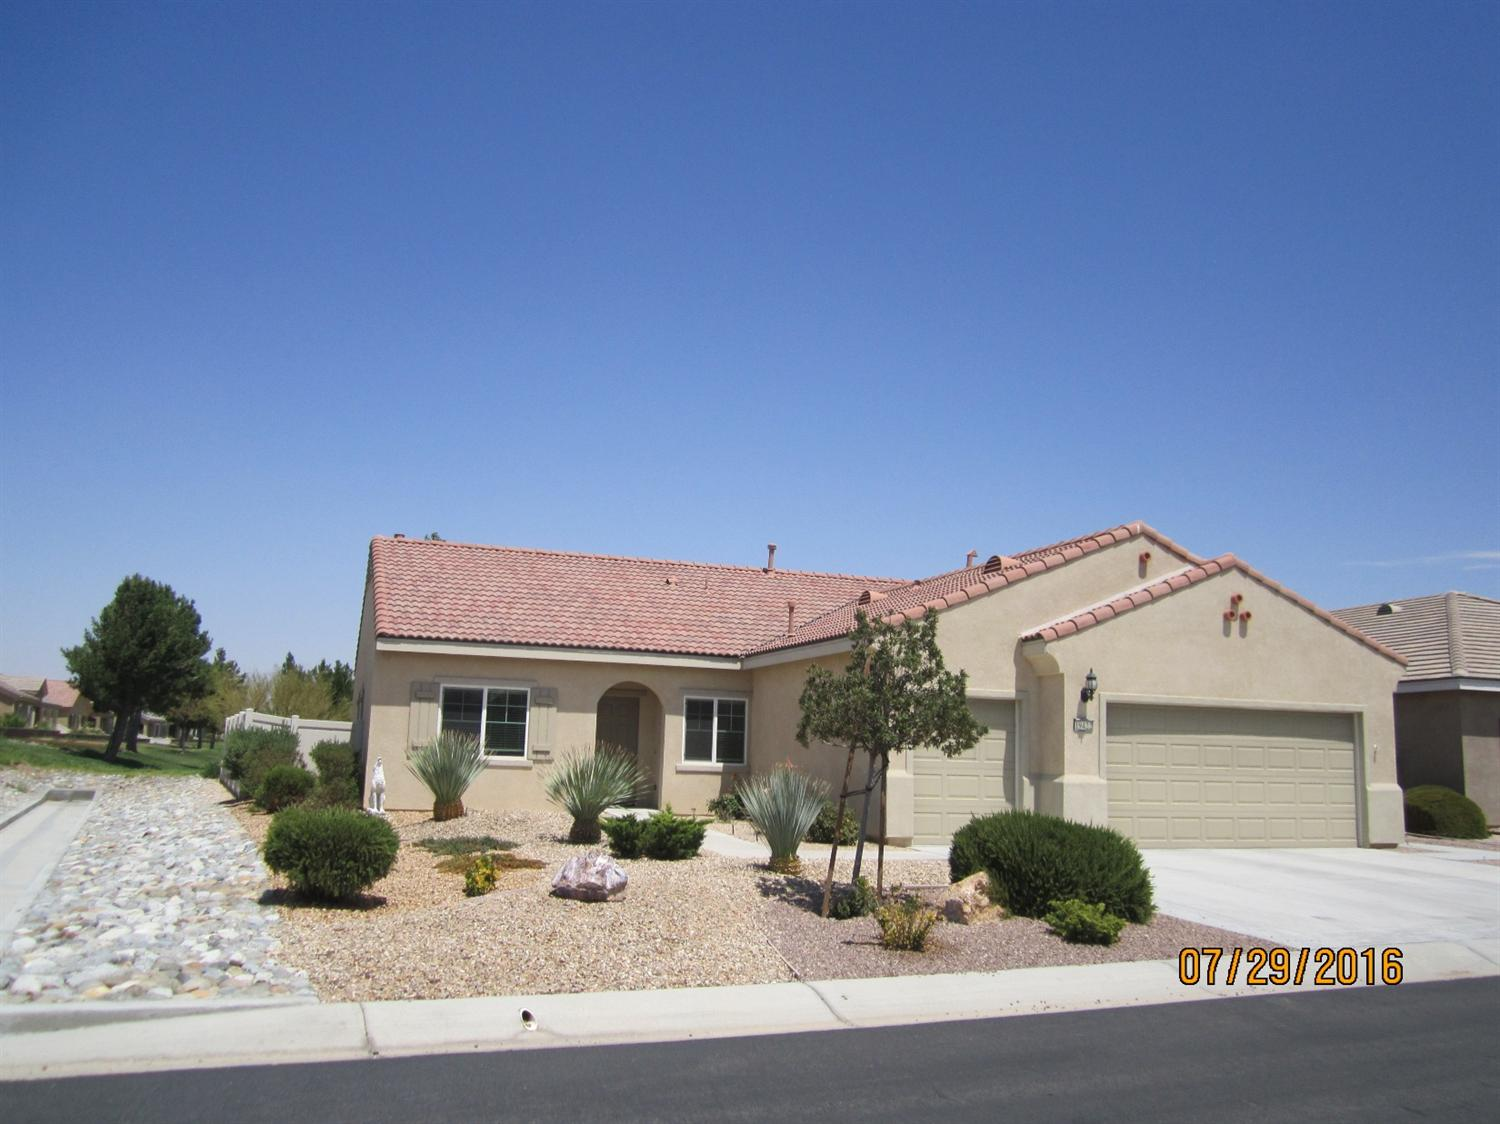 19422 Royal Oaks Road, Apple Valley, CA 92308